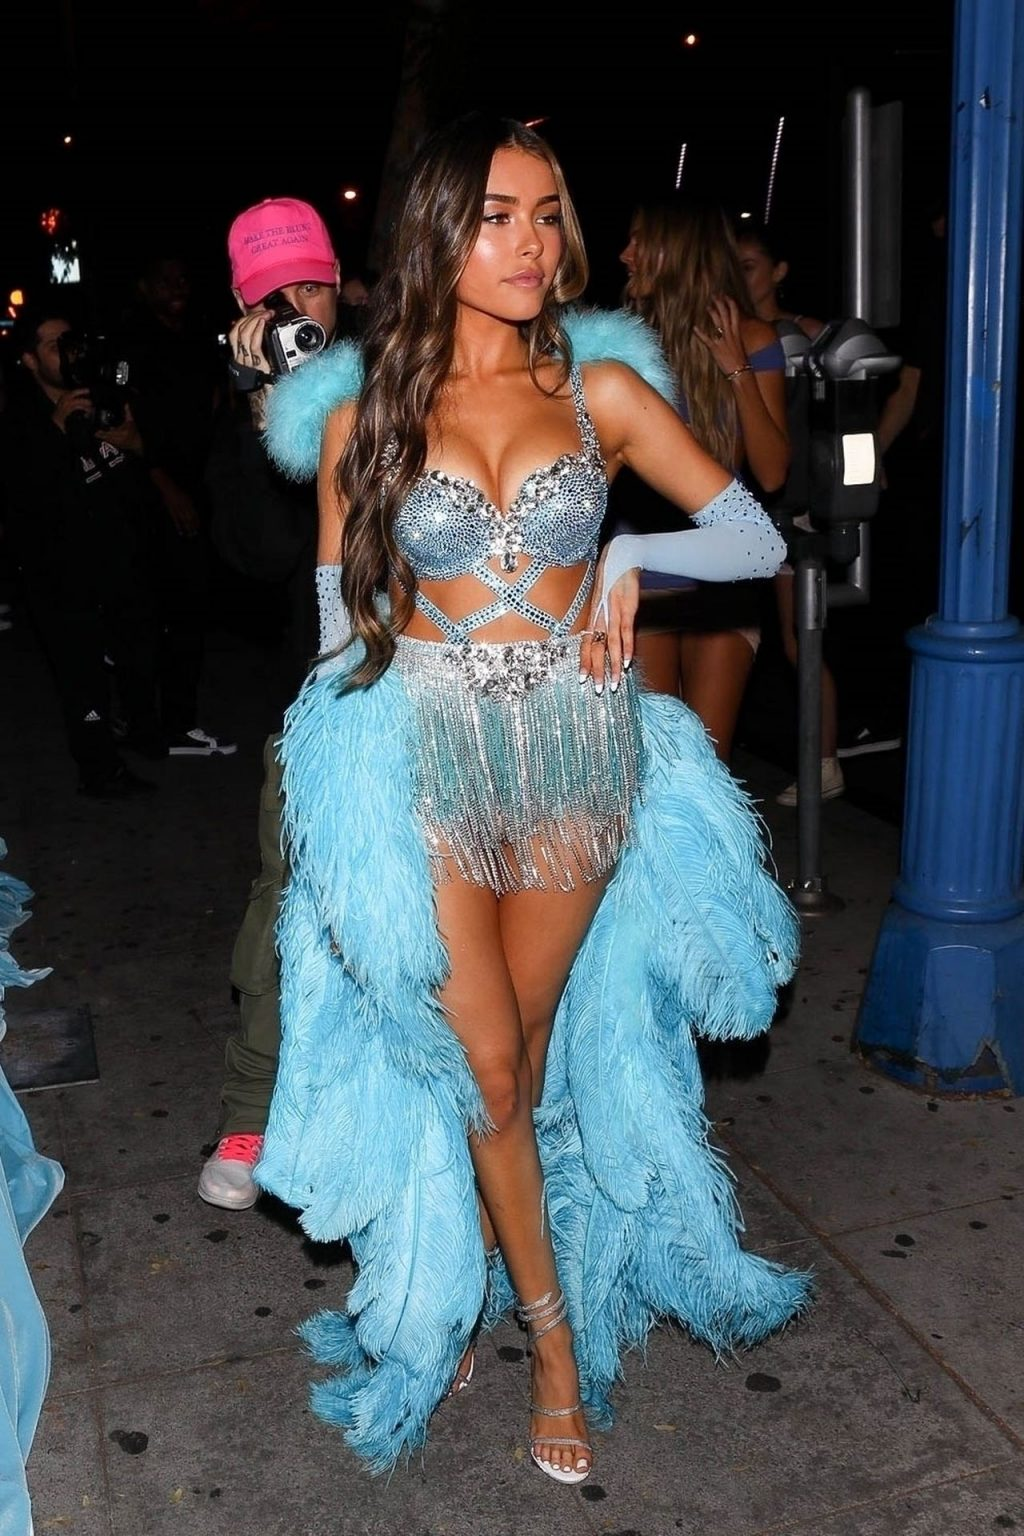 Madison Beer Puts On a Sexy Display in a Blue Feather Ensemble While Arriving at Her 21st Birthday Party (173 Photos)